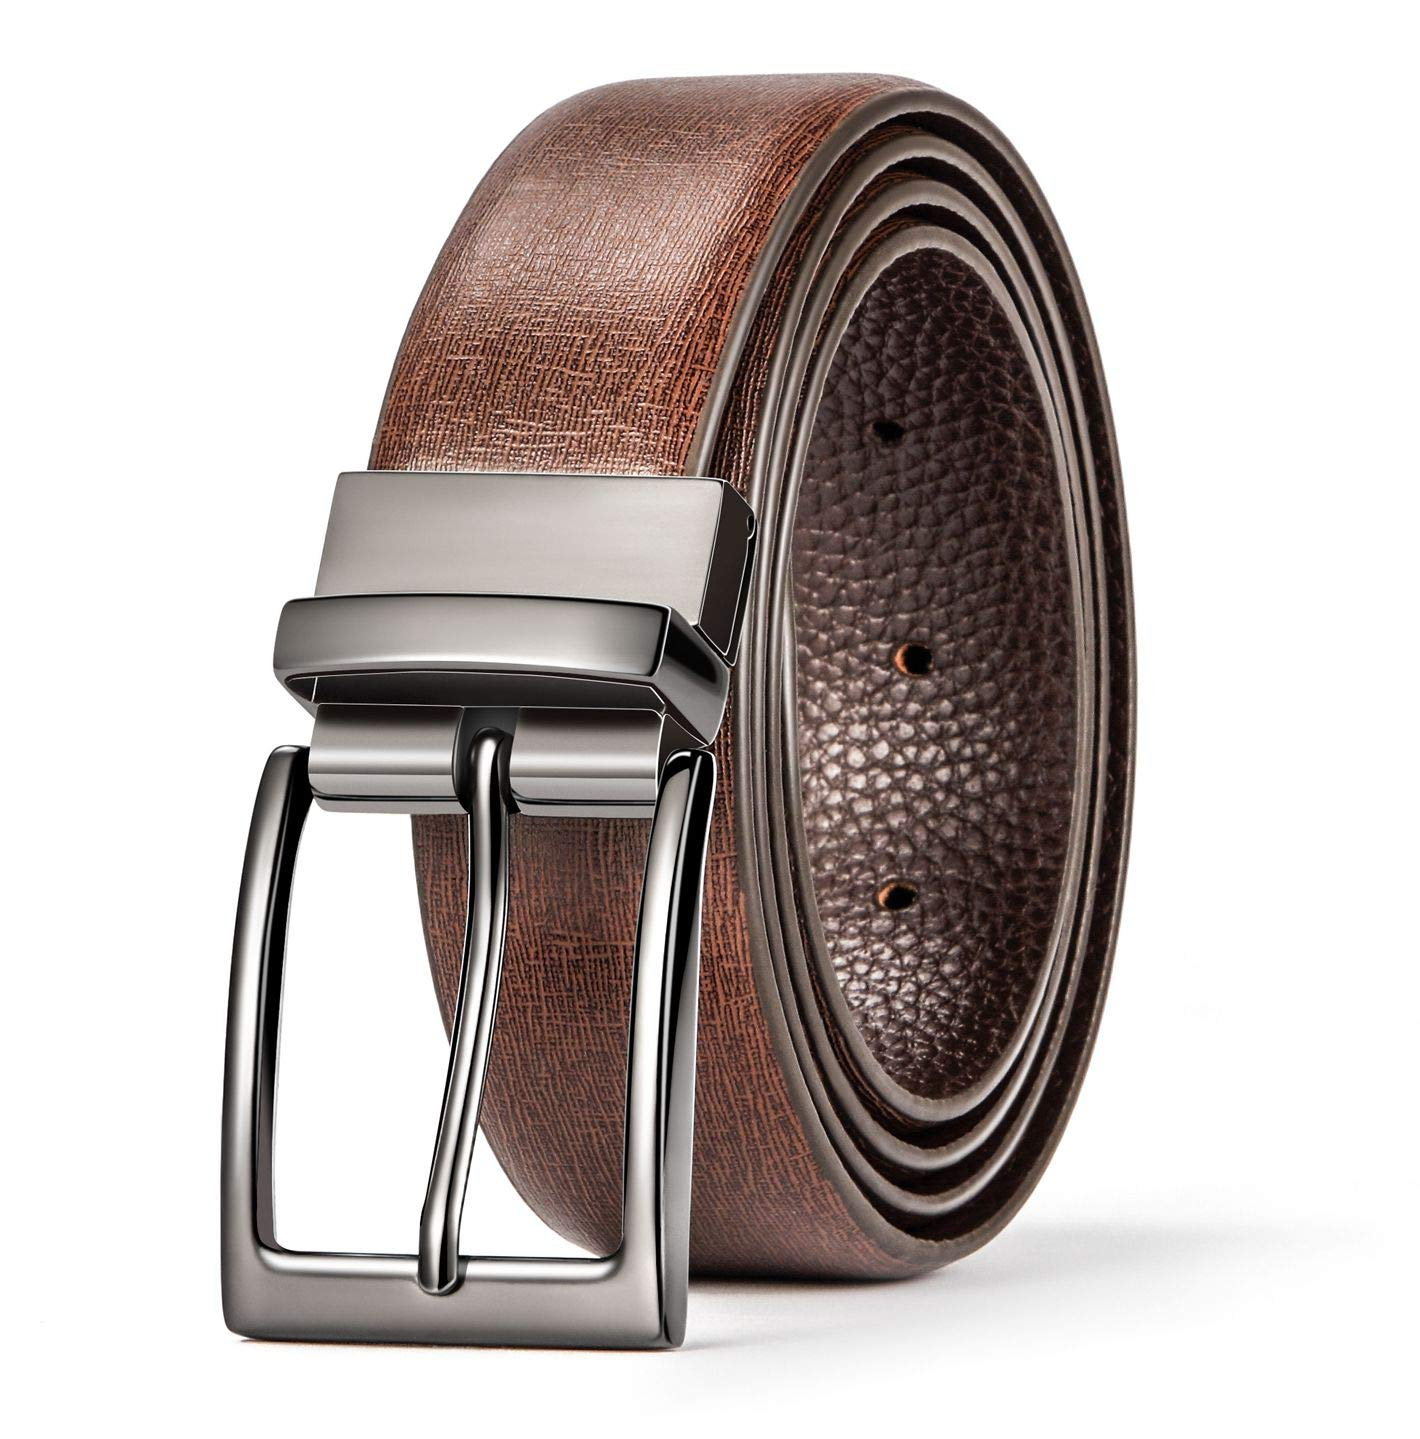 Okany Mens Classic Dress Reversible Leather Belt Rotated Polished Buckle with Beautiful Gift Box